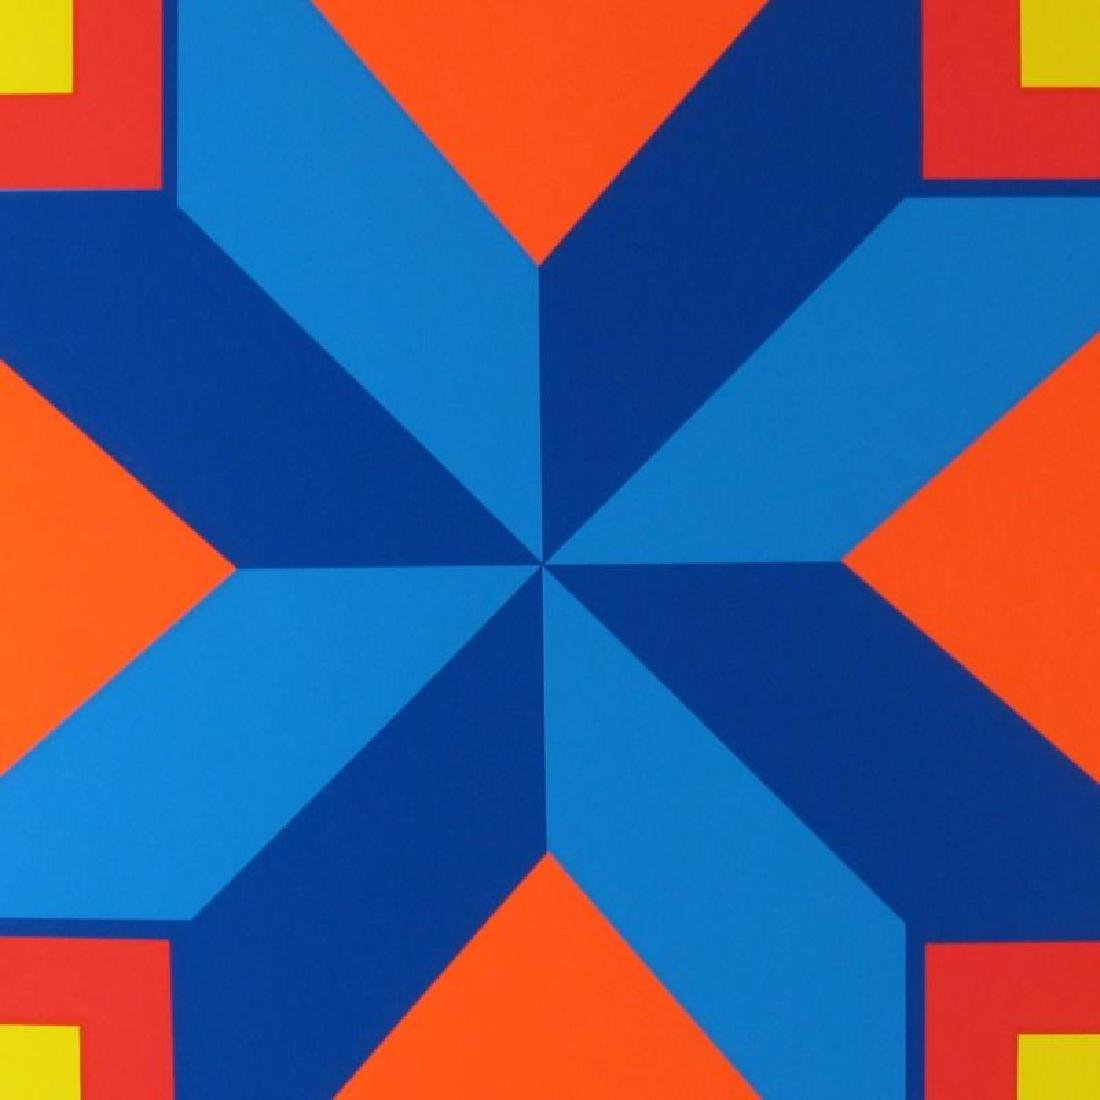 Abstract Vasarely Style Ltd Ed Huge Art Colorful - 3